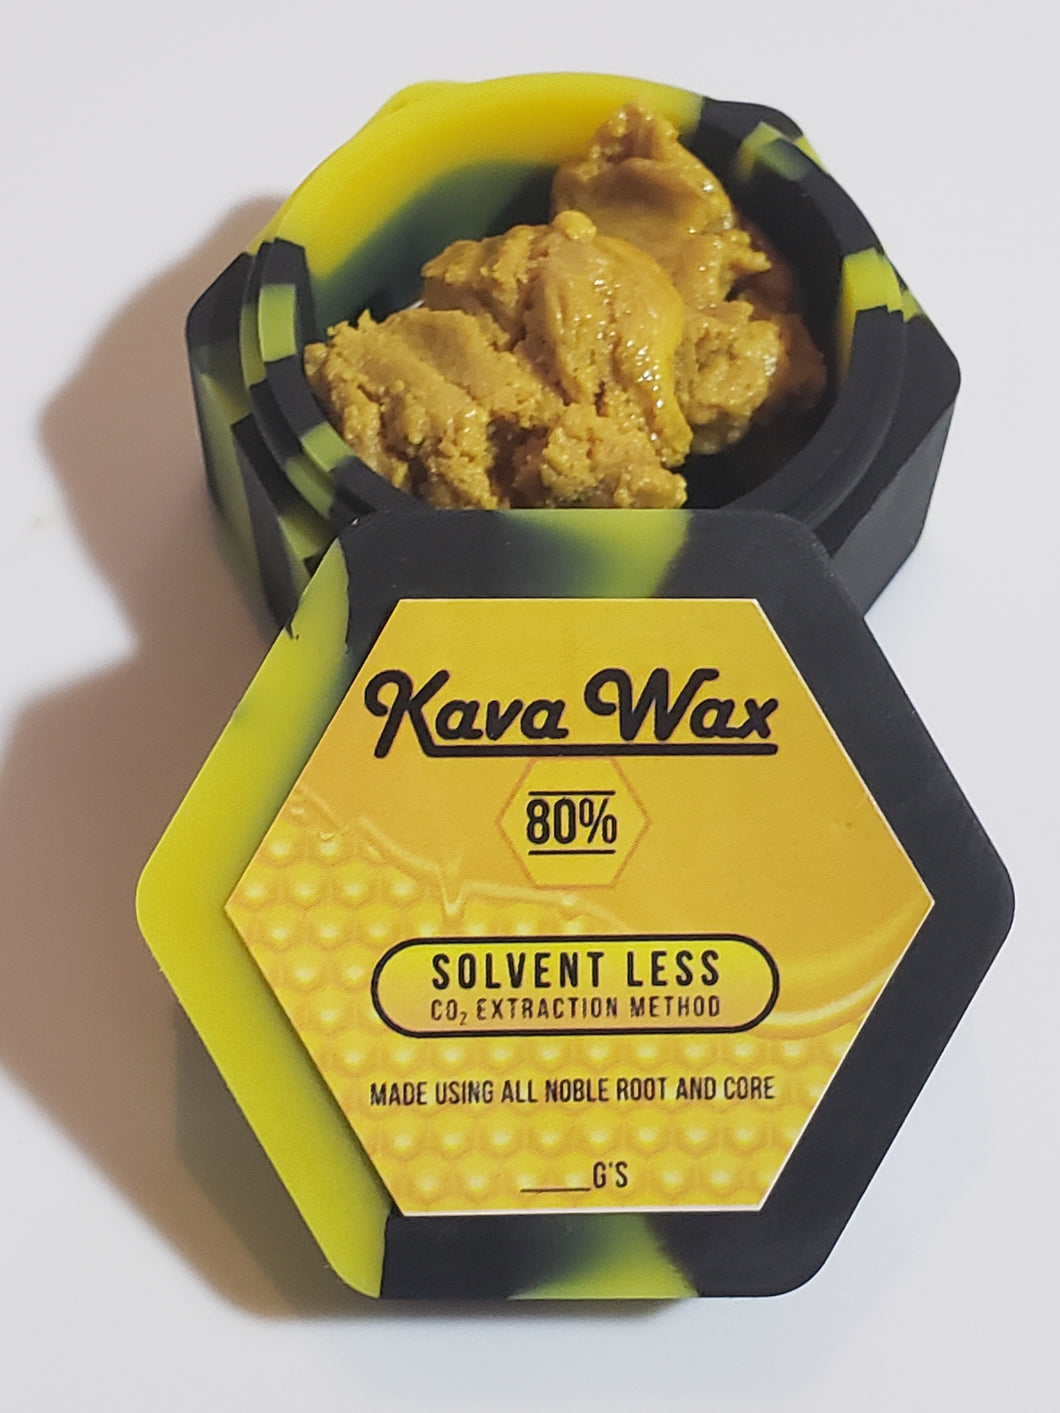 80% Kavalactone CO2 Extract - Yellow Crumble - Solventless - CO2 - Wax